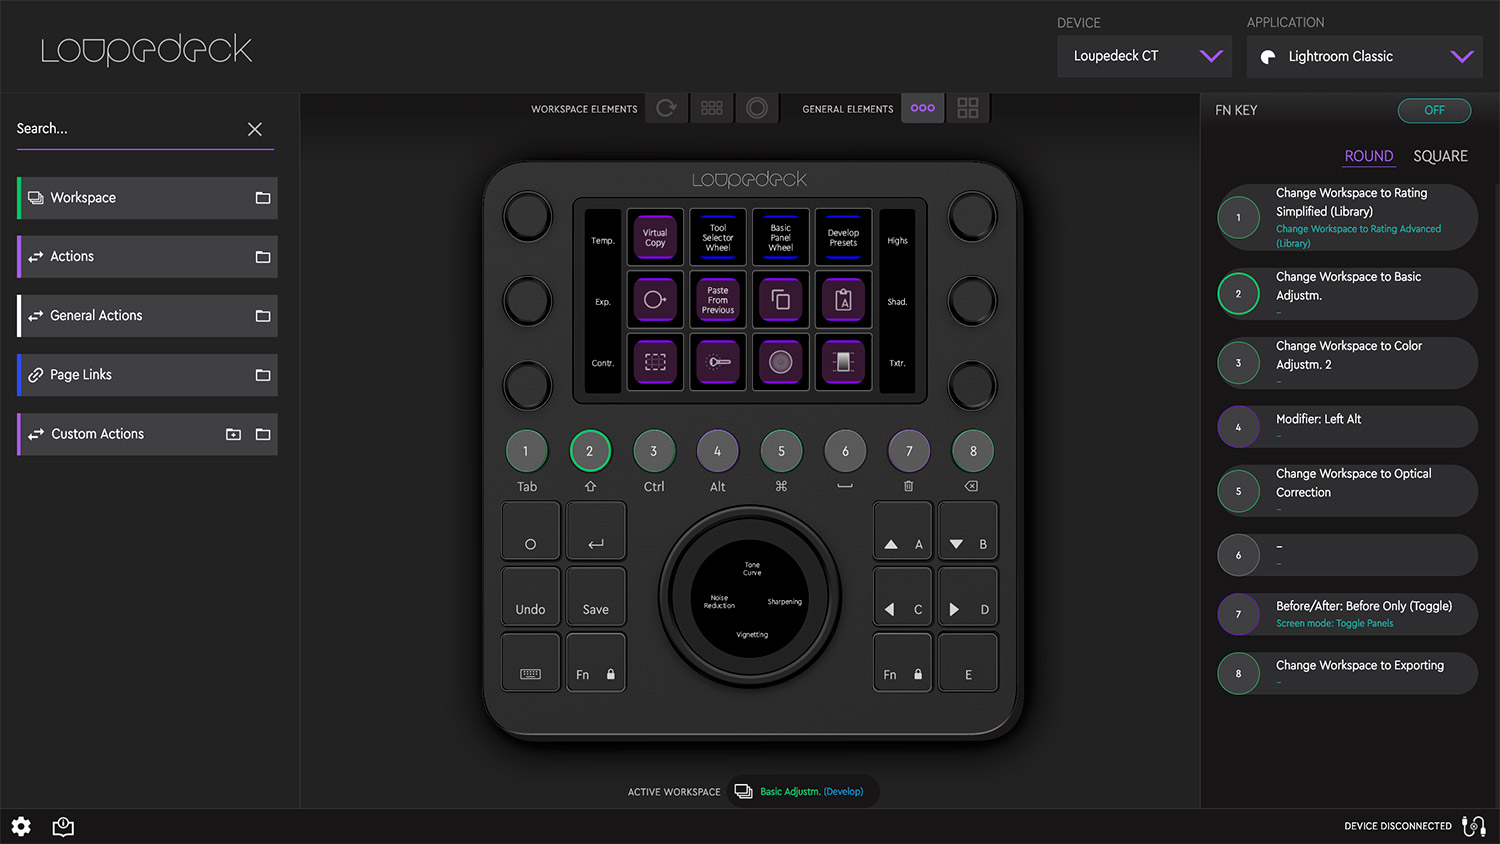 The step Screen for the Loupdeck CT showing Lightroom Classic Settings